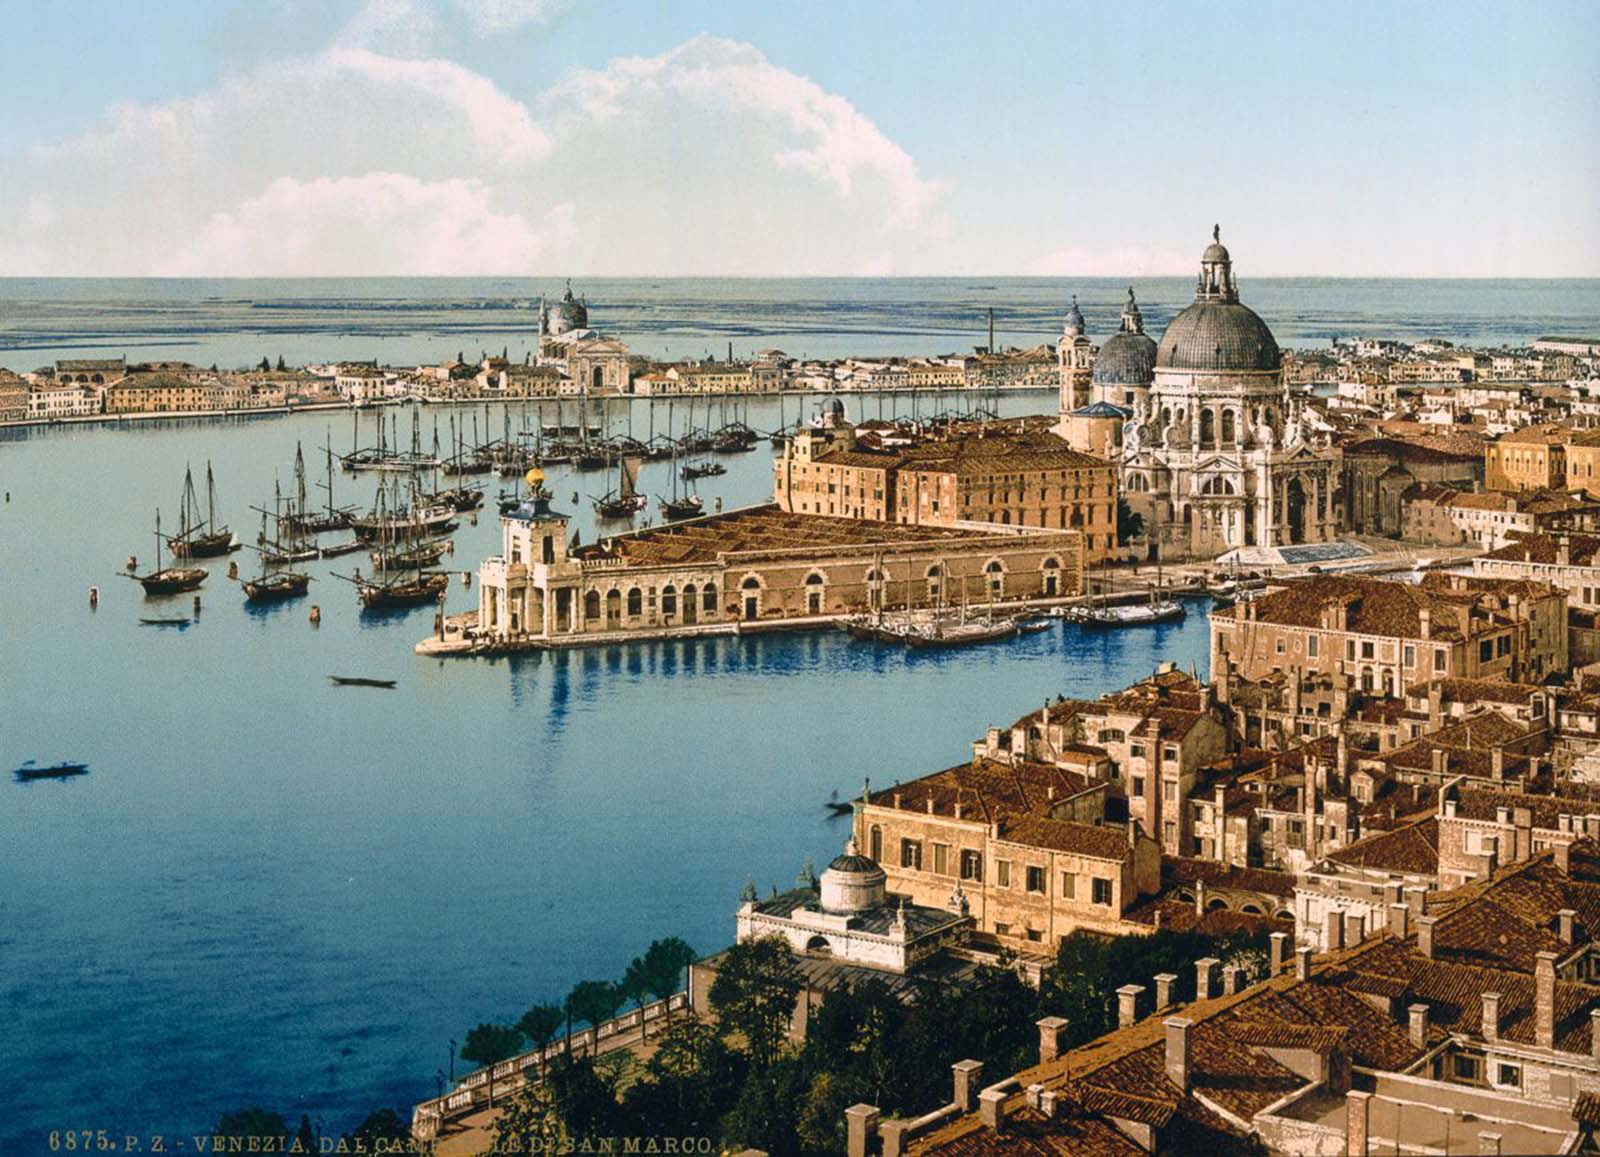 venice-in-beautiful-old-color-images-1890_2.jpg